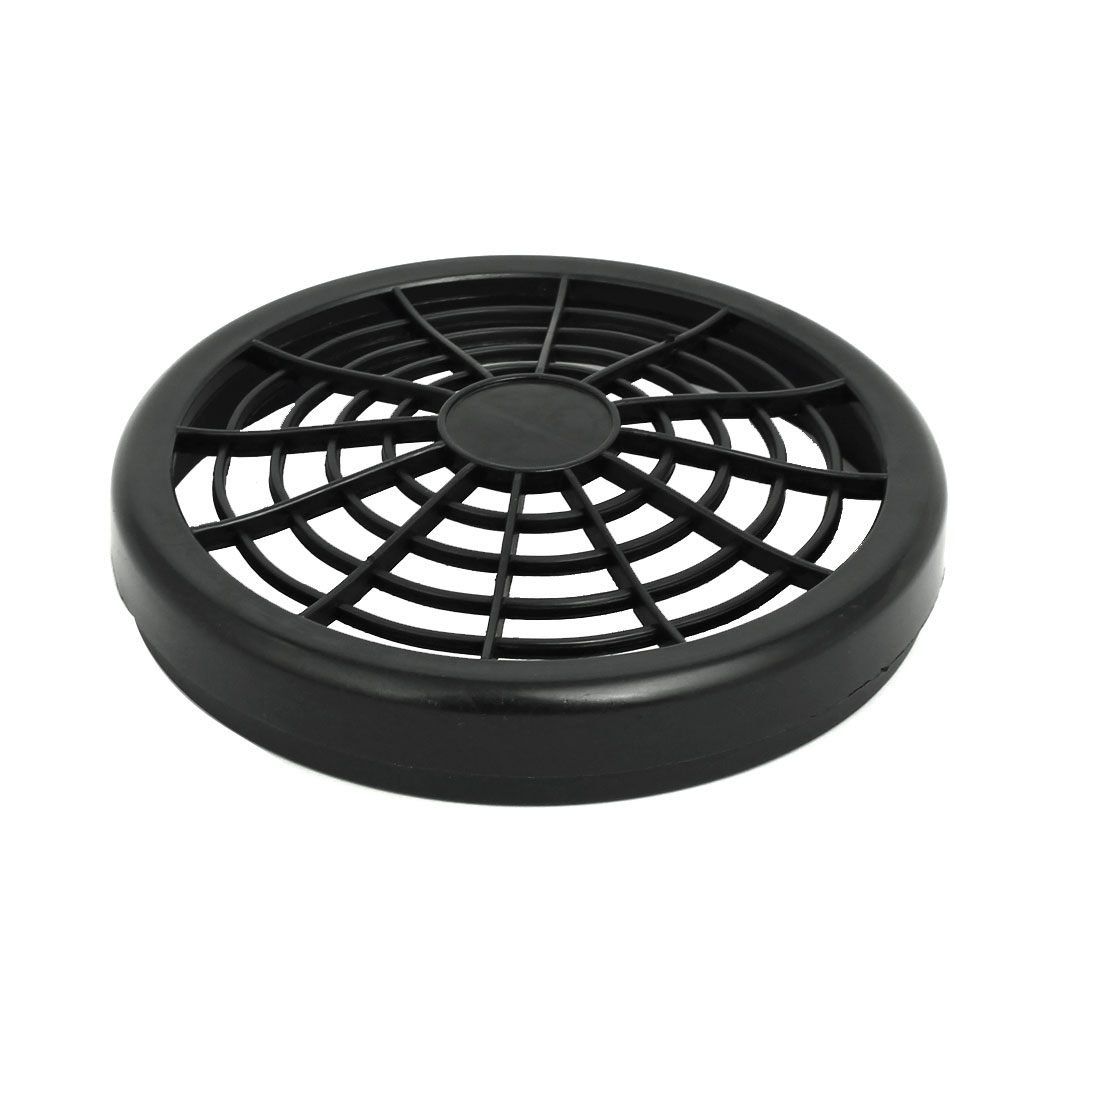 1100W/1500W 155mm Diameter Plastic Air Compressor Replacement Fan Cover Black